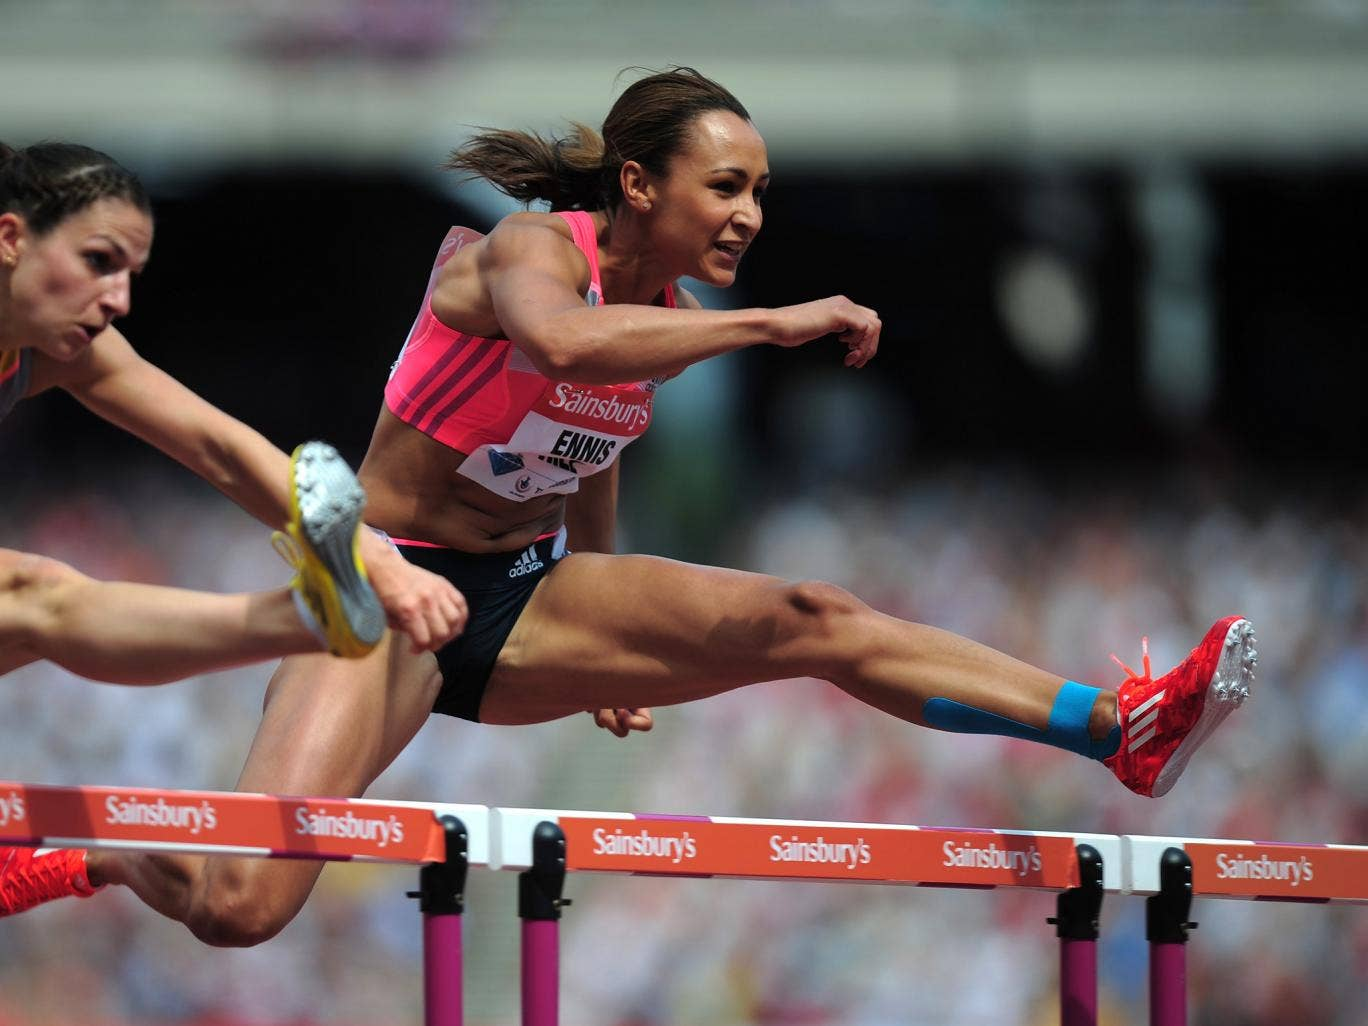 Jessica Ennis-Hill of Great Britain competes in the Women's 100m Hurdles